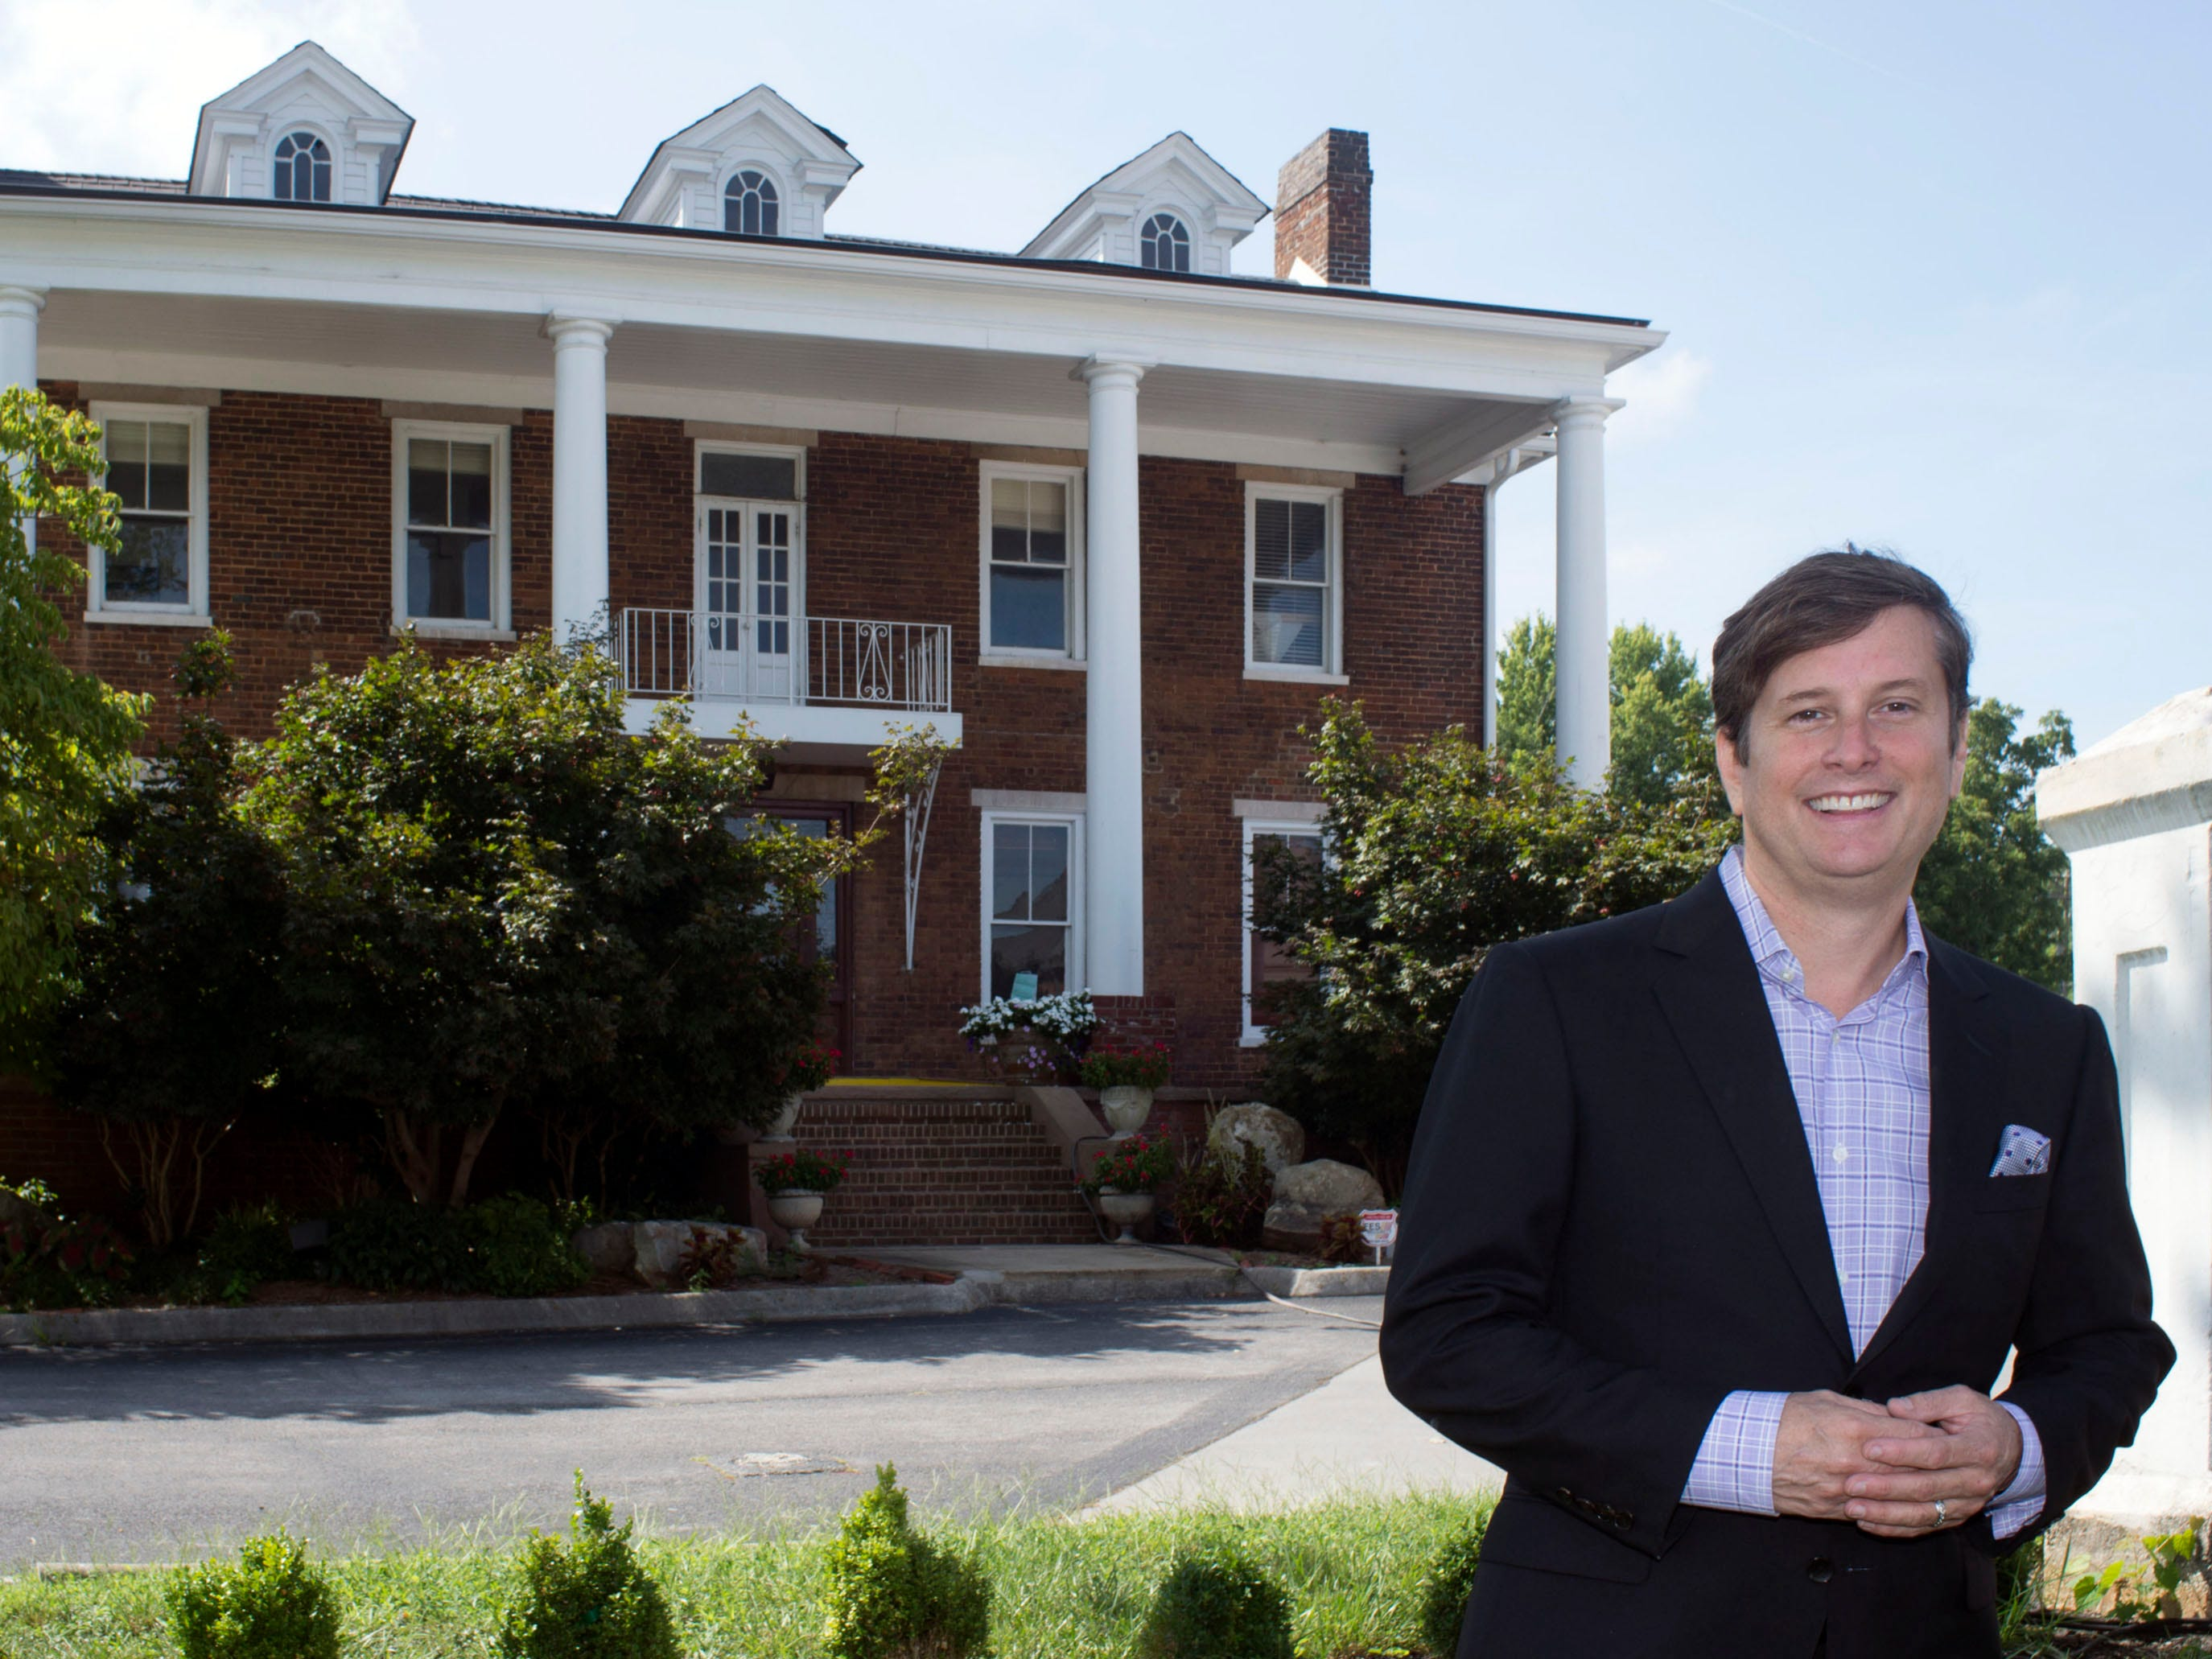 Developer Tony Cappiello visits the former Baker Peters house which he has leased Friday, Aug. 21, 2015, in West Knoxville. He plans to open a restaurant there early next year. The building formerly housed the Baker Peters Jazz Club.